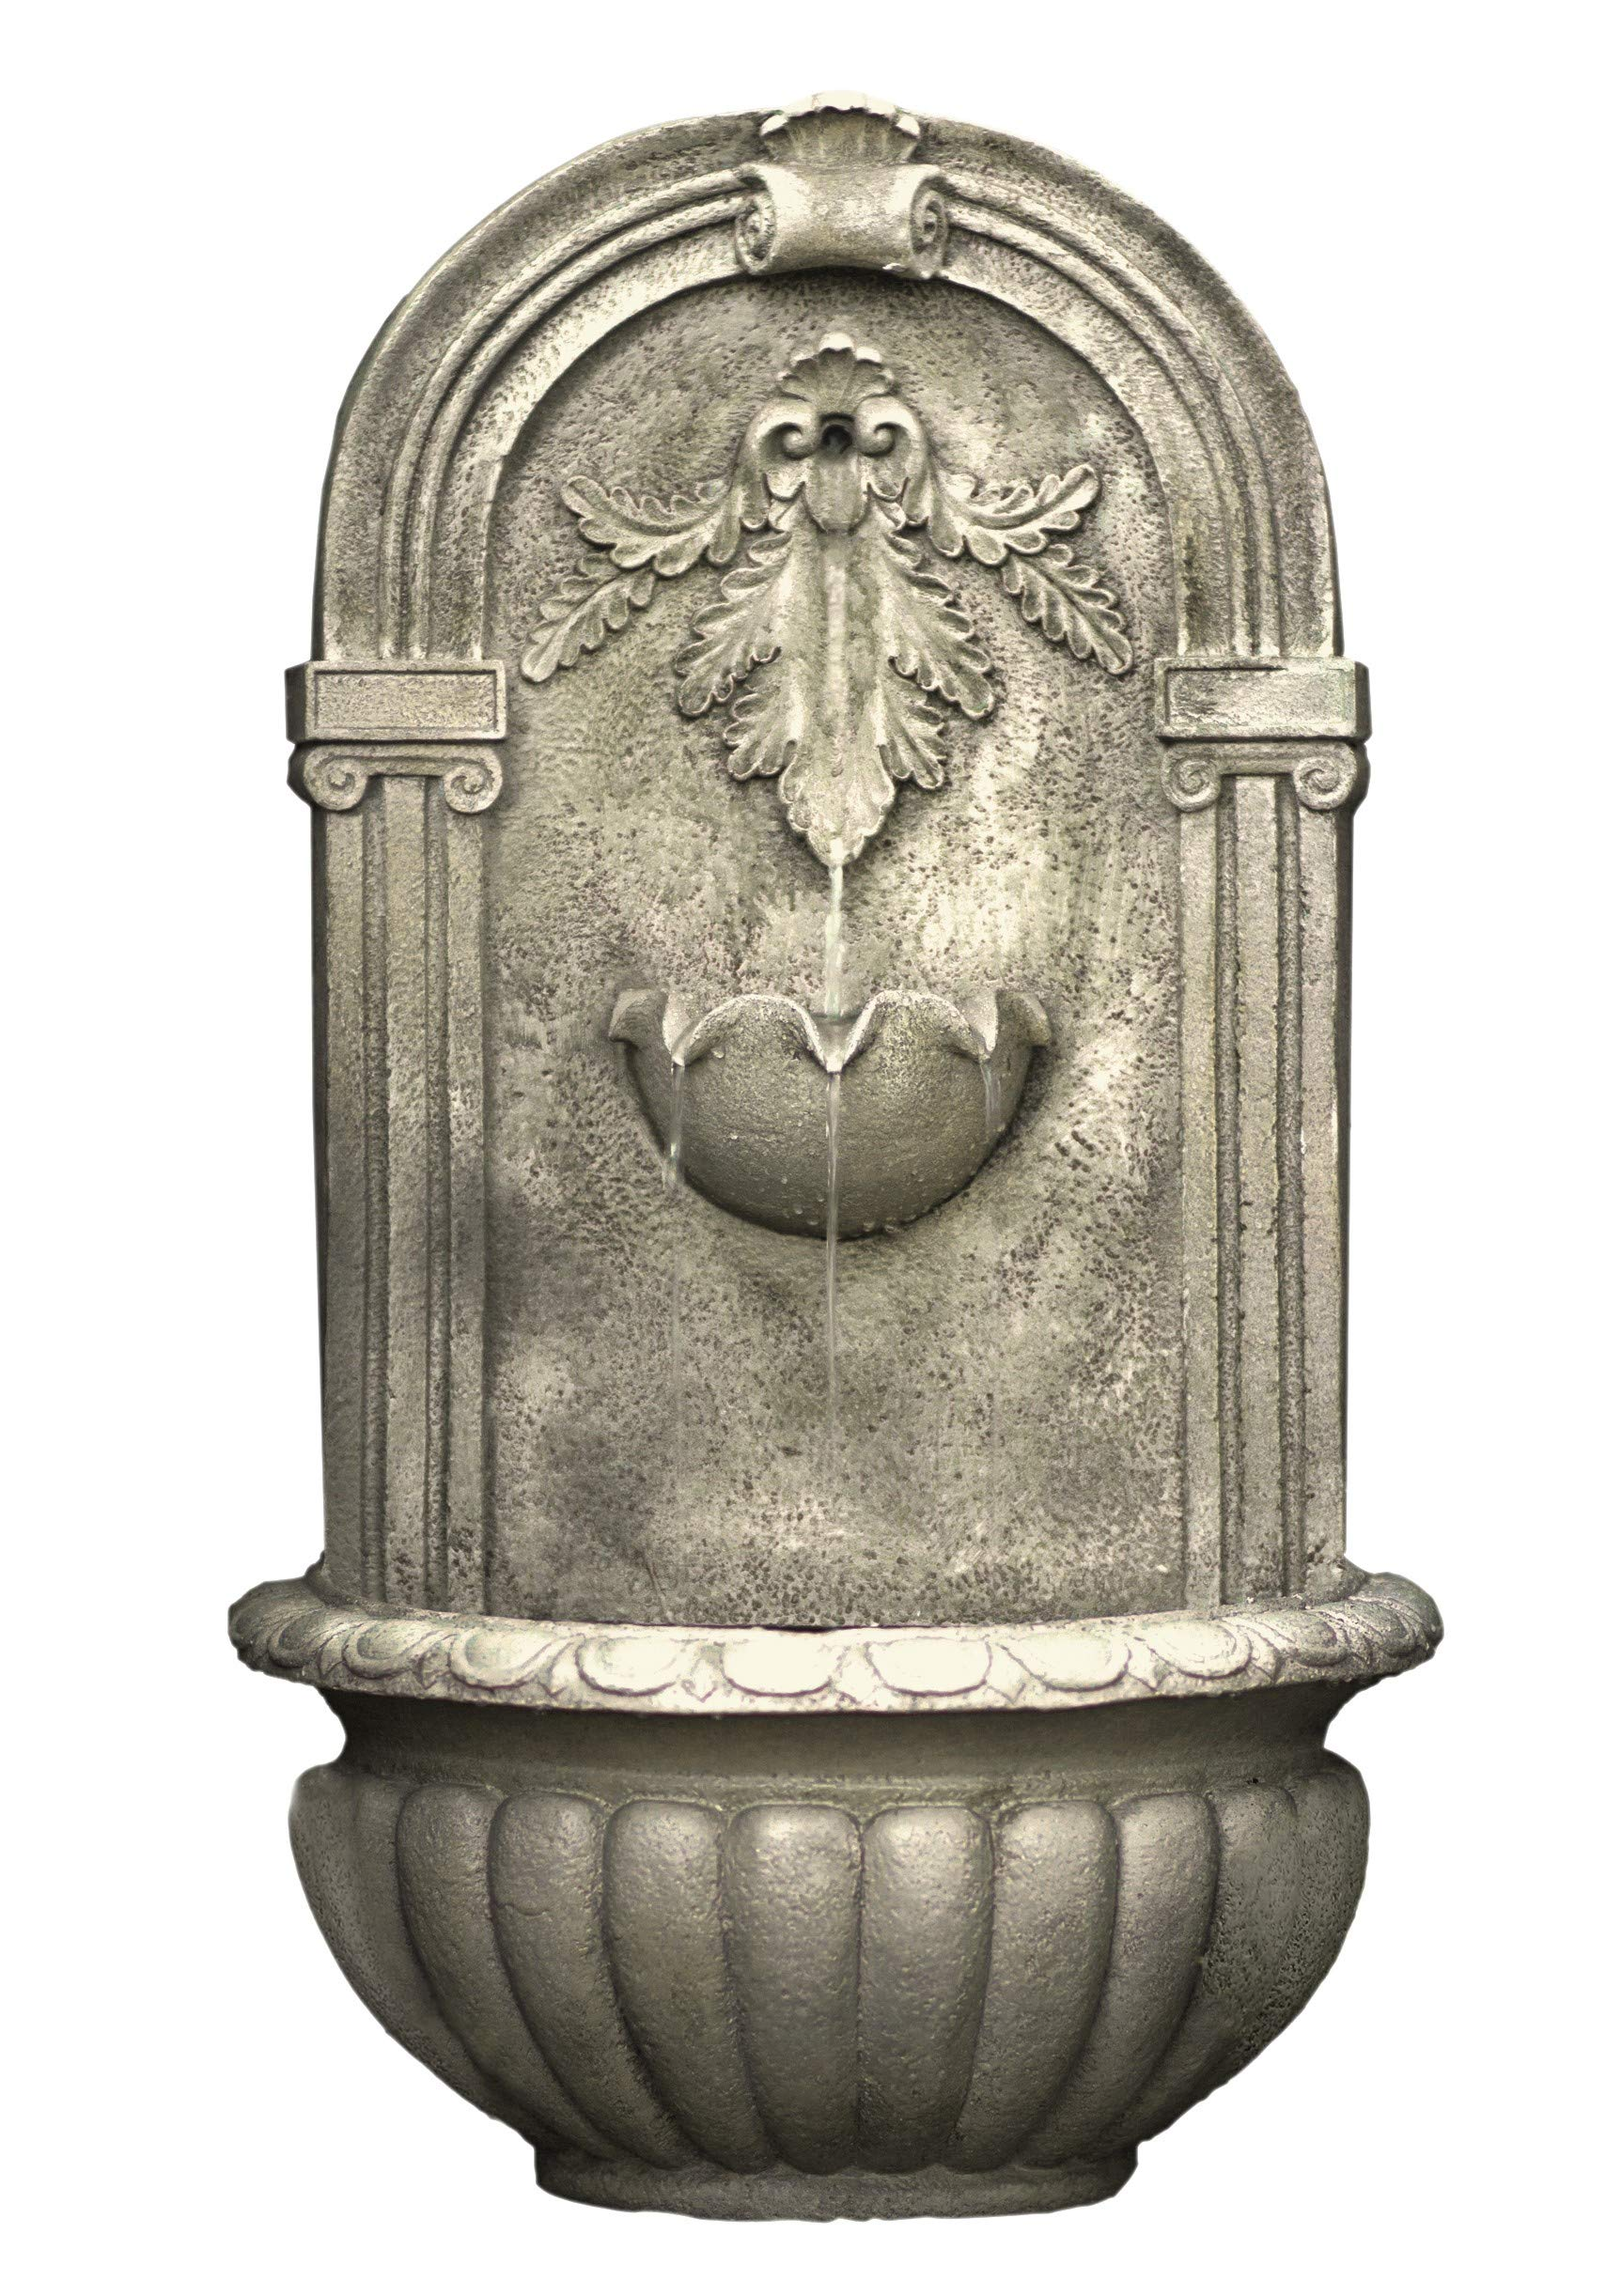 The Theodora Outdoor Wall Fountain - Parchment - Water Feature for Garden, Patio and Landscape Enhancement HF-W009-P by Harmony Fountains